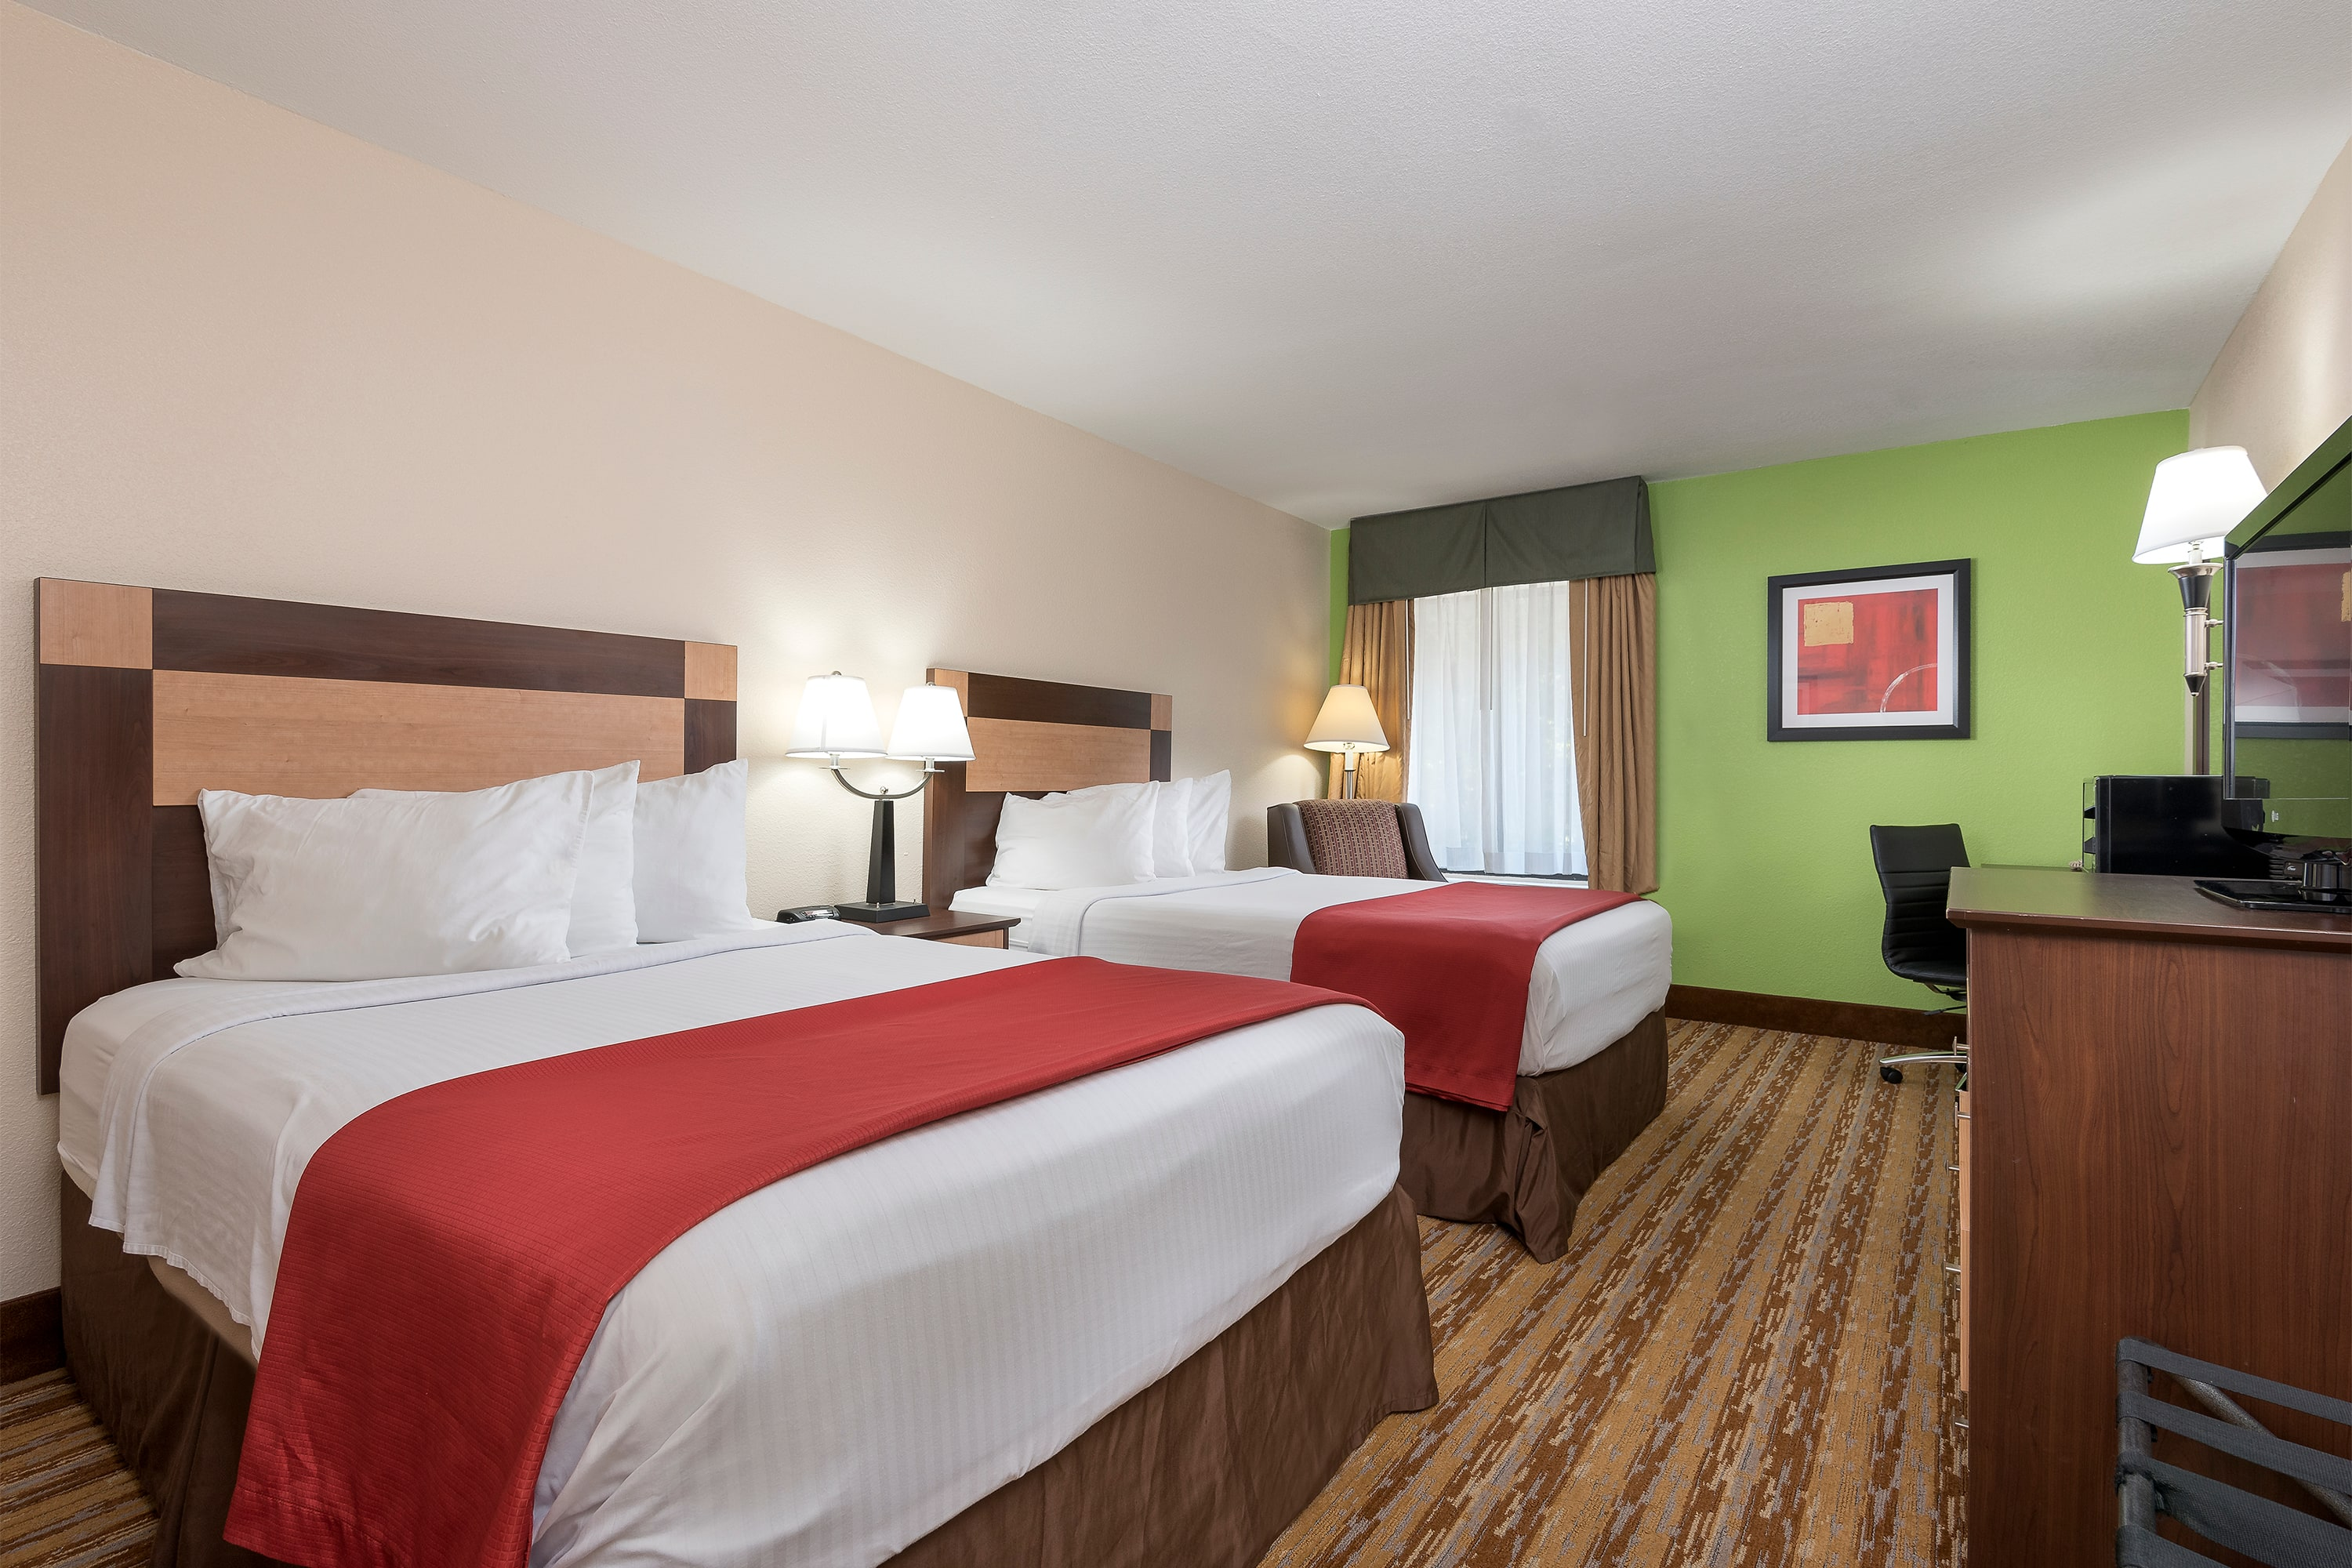 Guest room at the Days Inn Asheville/Tunnel Road & I-40 in Asheville, North Carolina